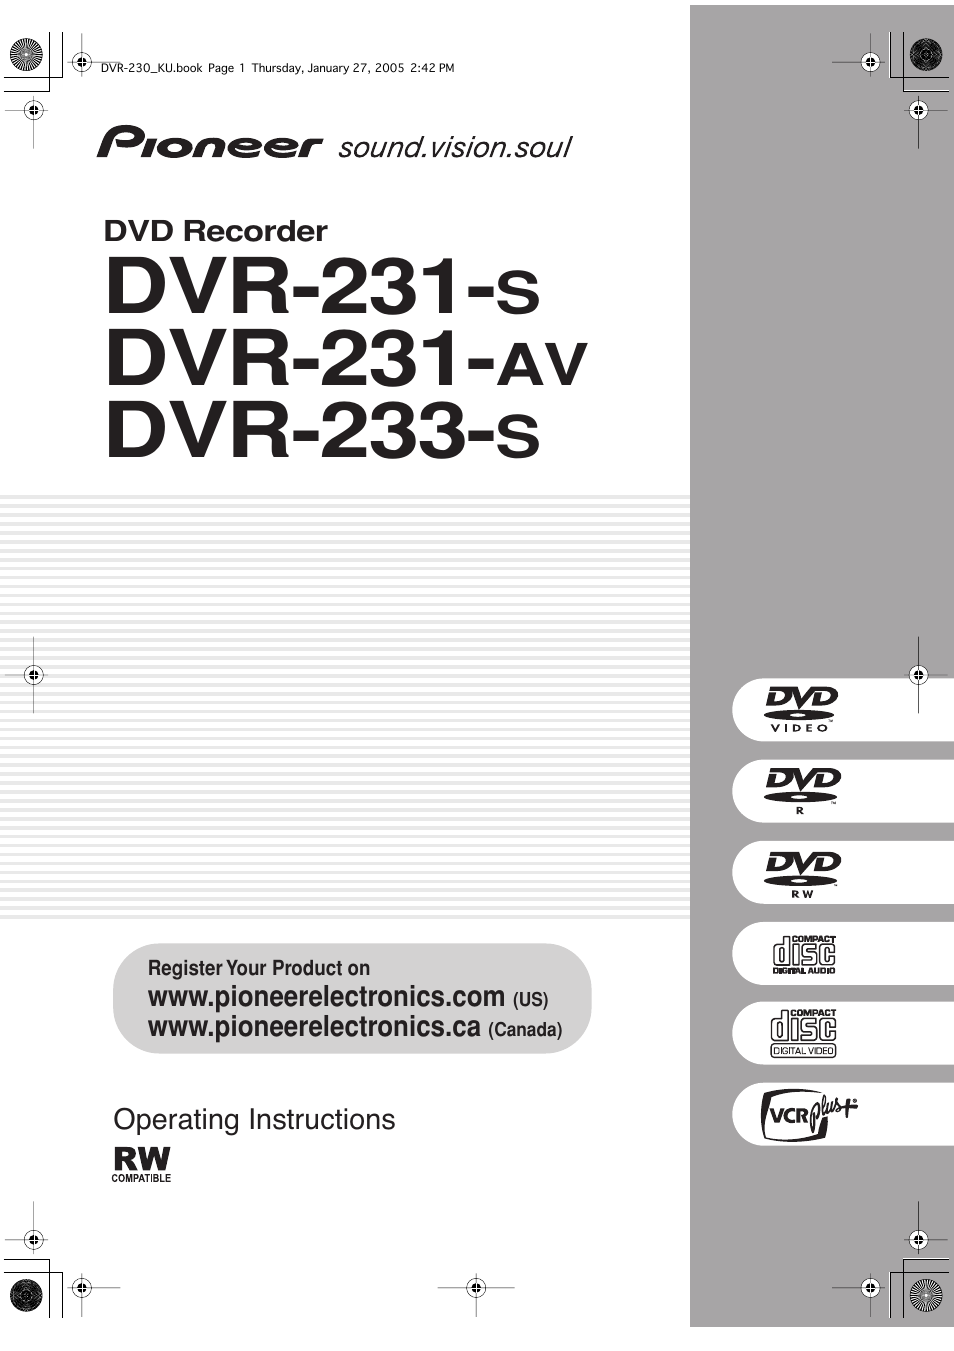 pioneer dvr 233 s user manual 68 pages also for dvr 231 s dvr rh manualsdir com Dish DVR Manual Dish DVR Manual